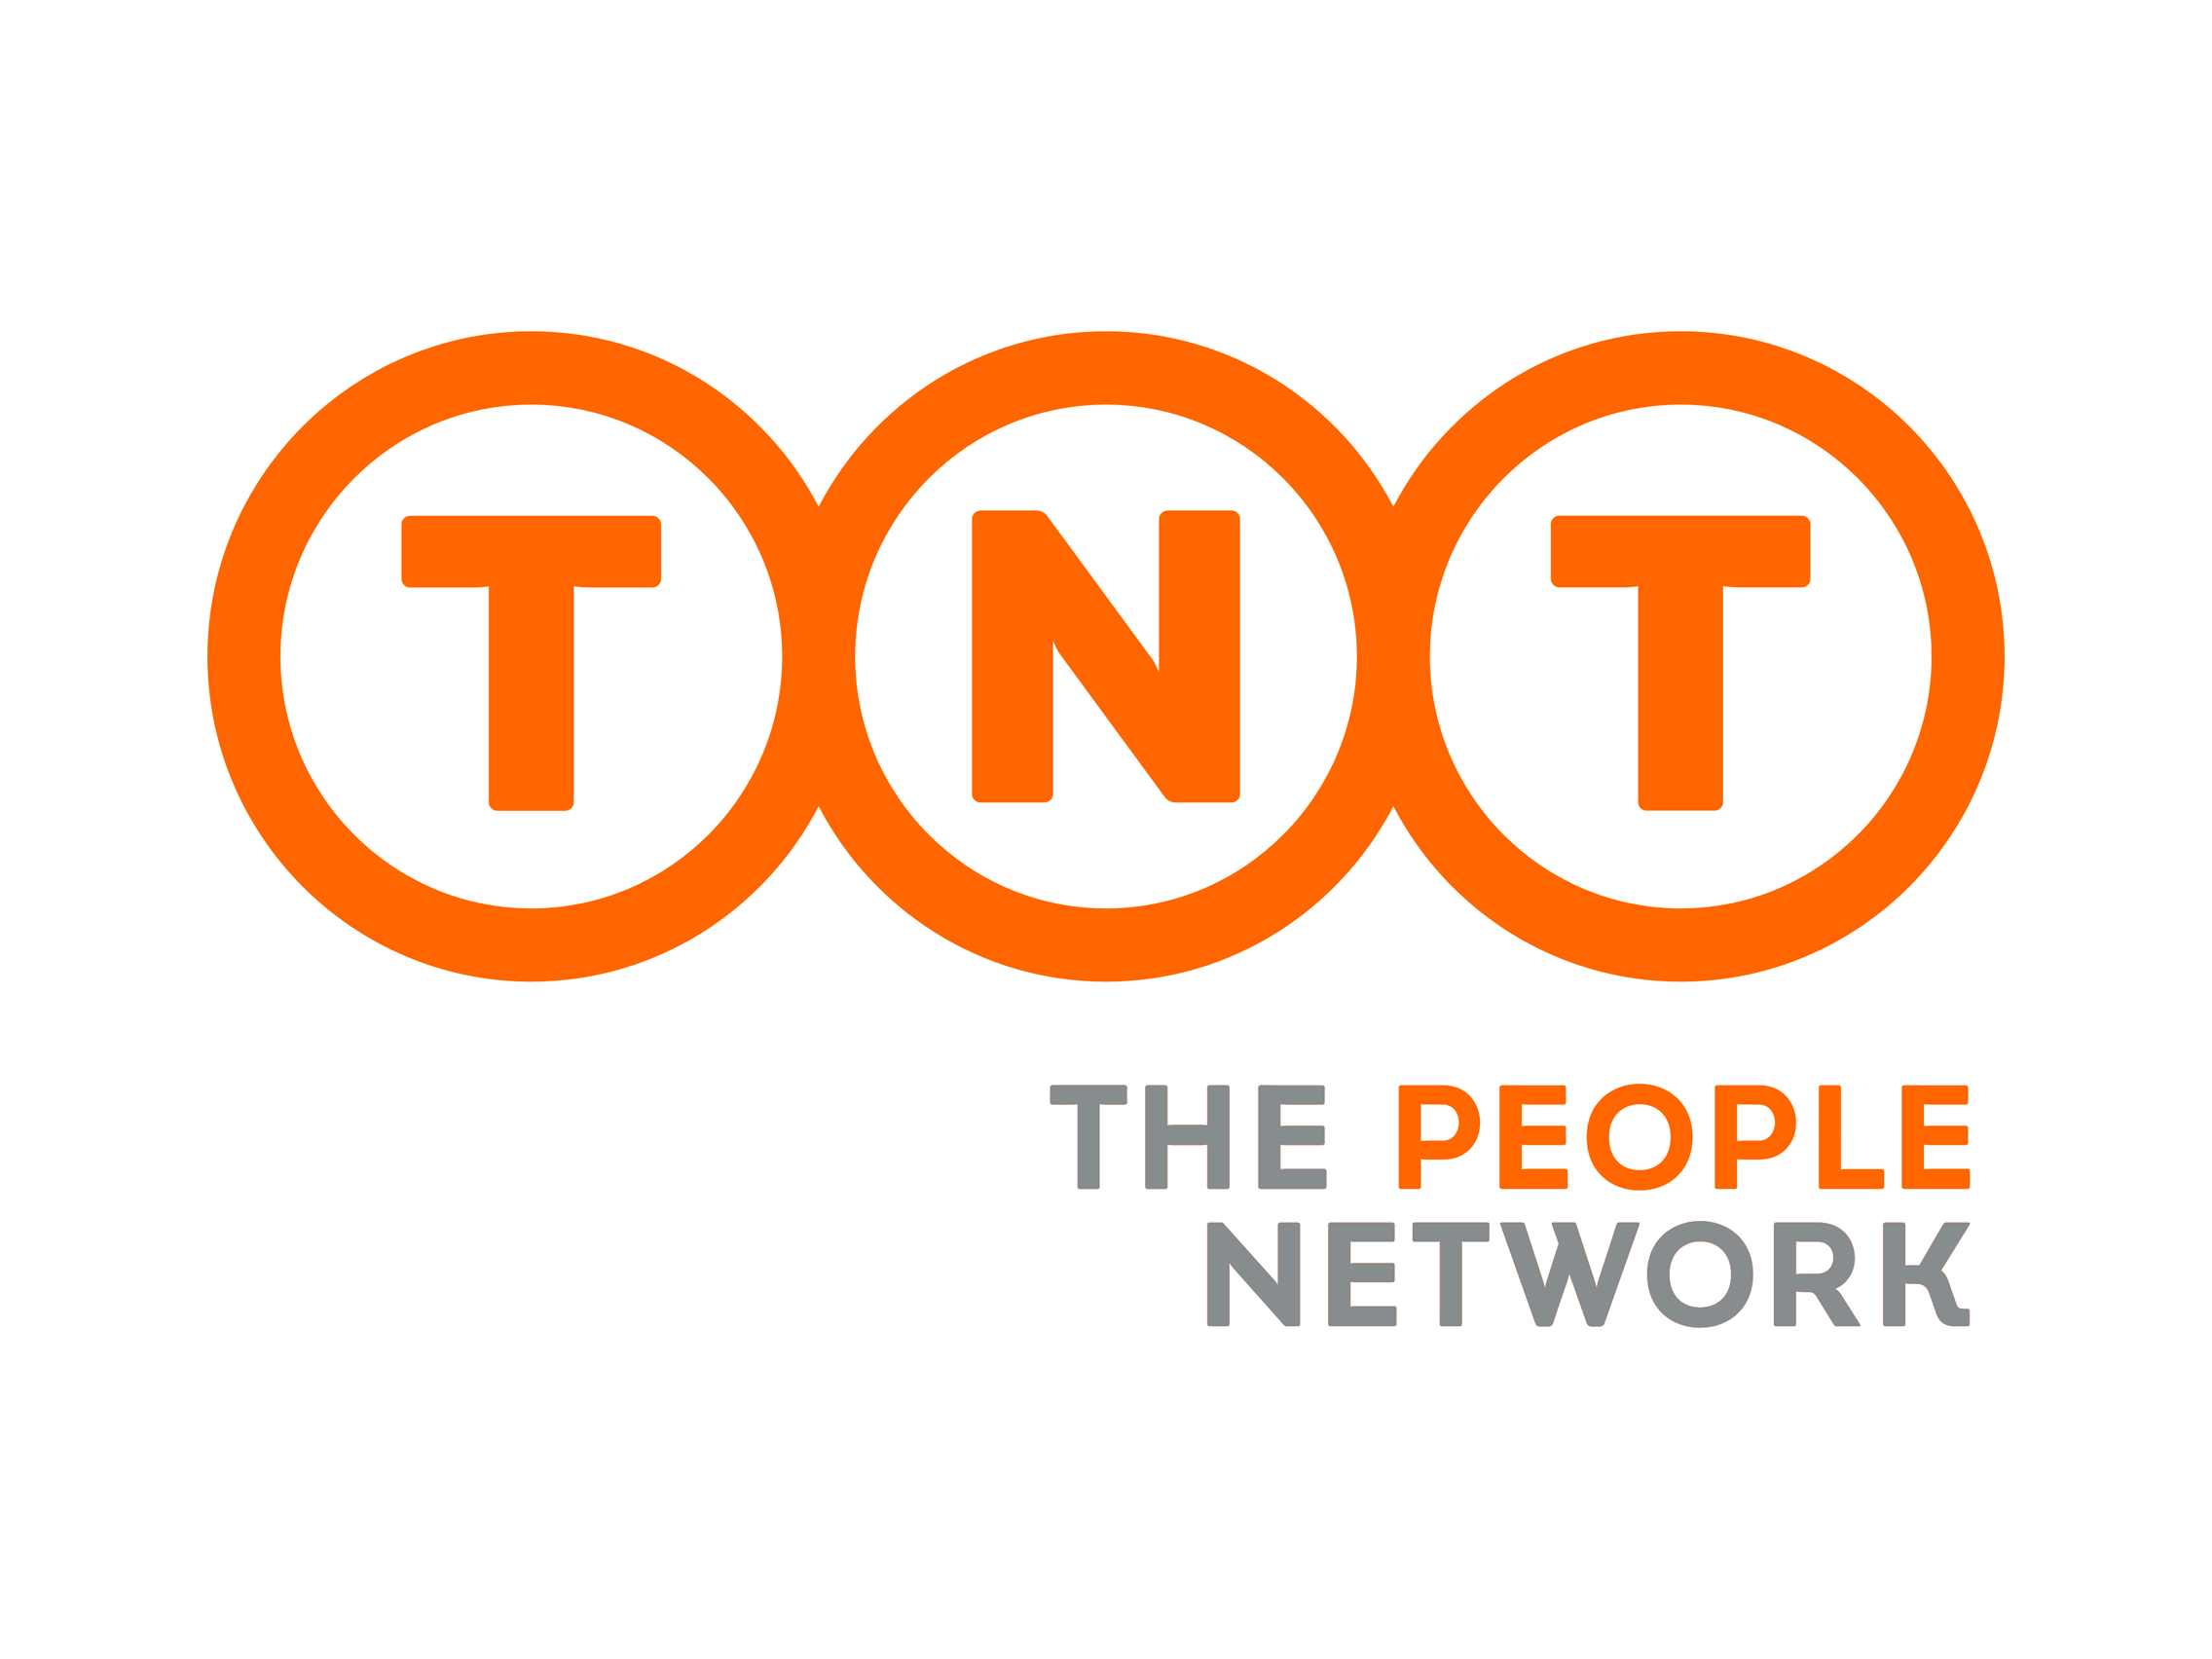 Tnt Logo With Slogan Png 2272 1704 Logos Warehouse Management System Airline Logo